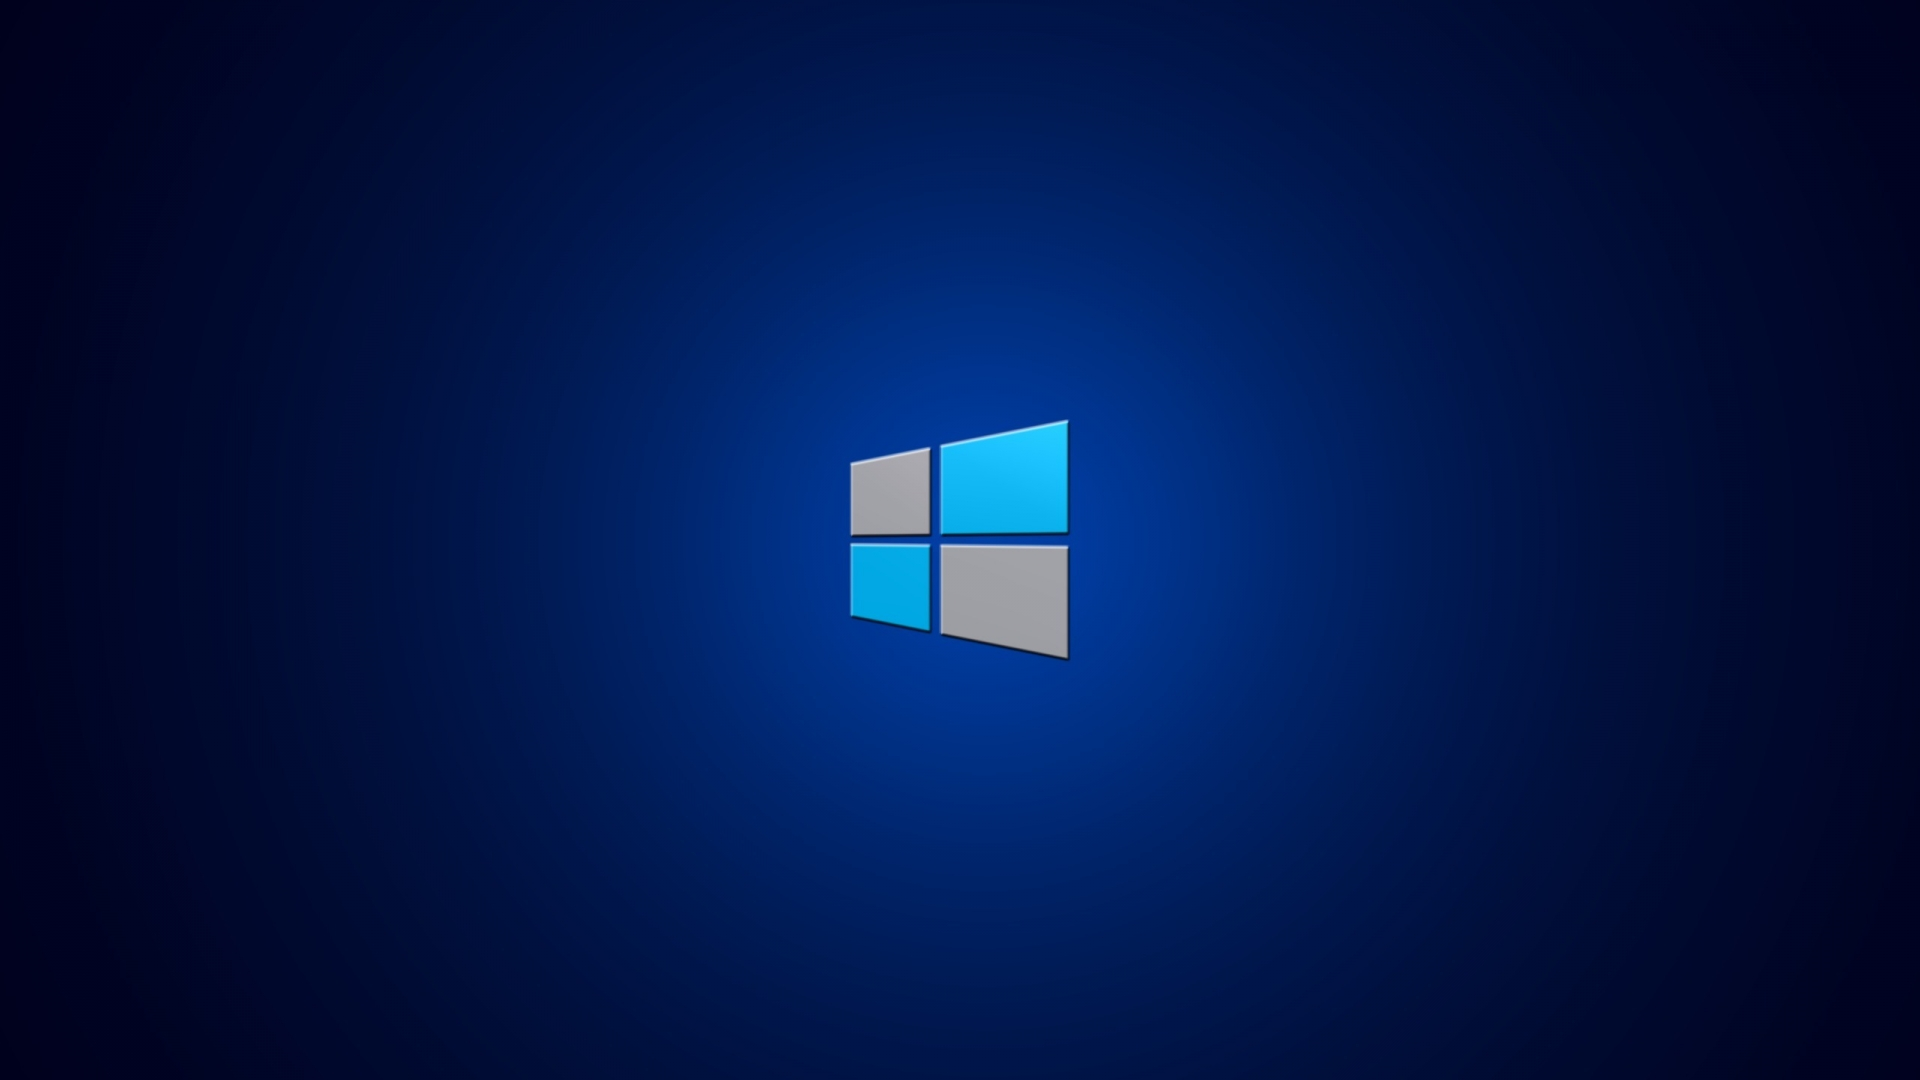 WINDOWS 8 BG01